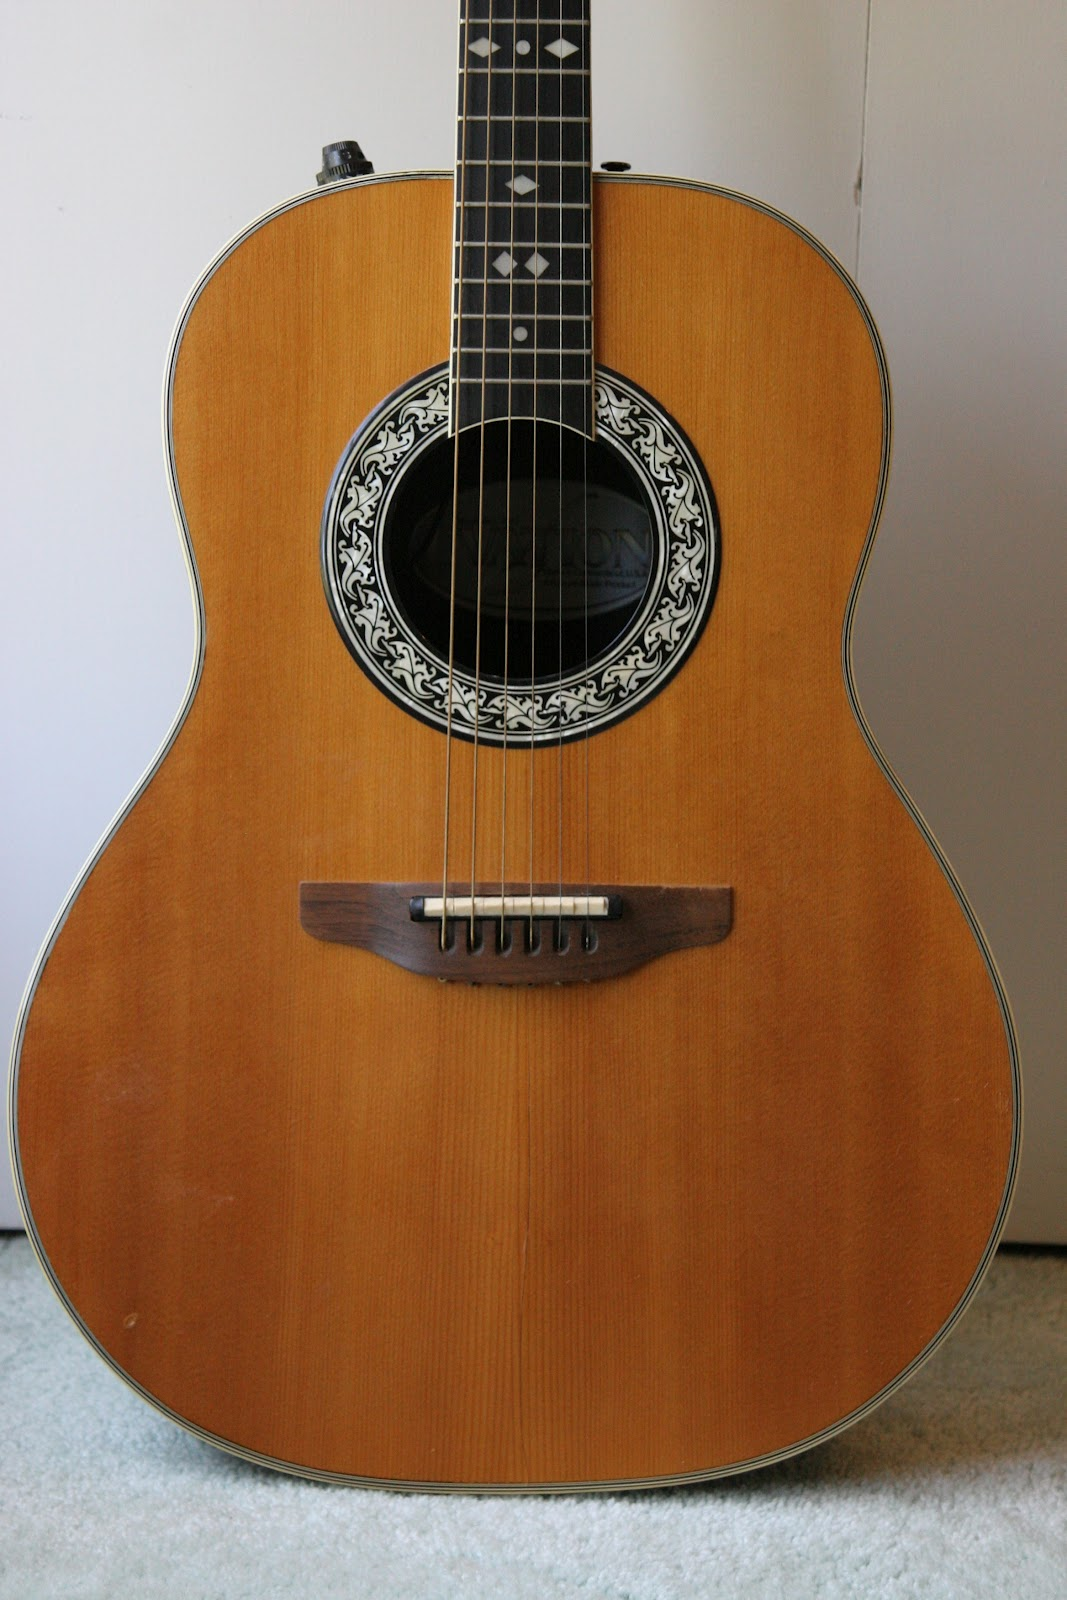 guitar industry trends and dynamics ovation 1980 model 1617 acoustic electric. Black Bedroom Furniture Sets. Home Design Ideas